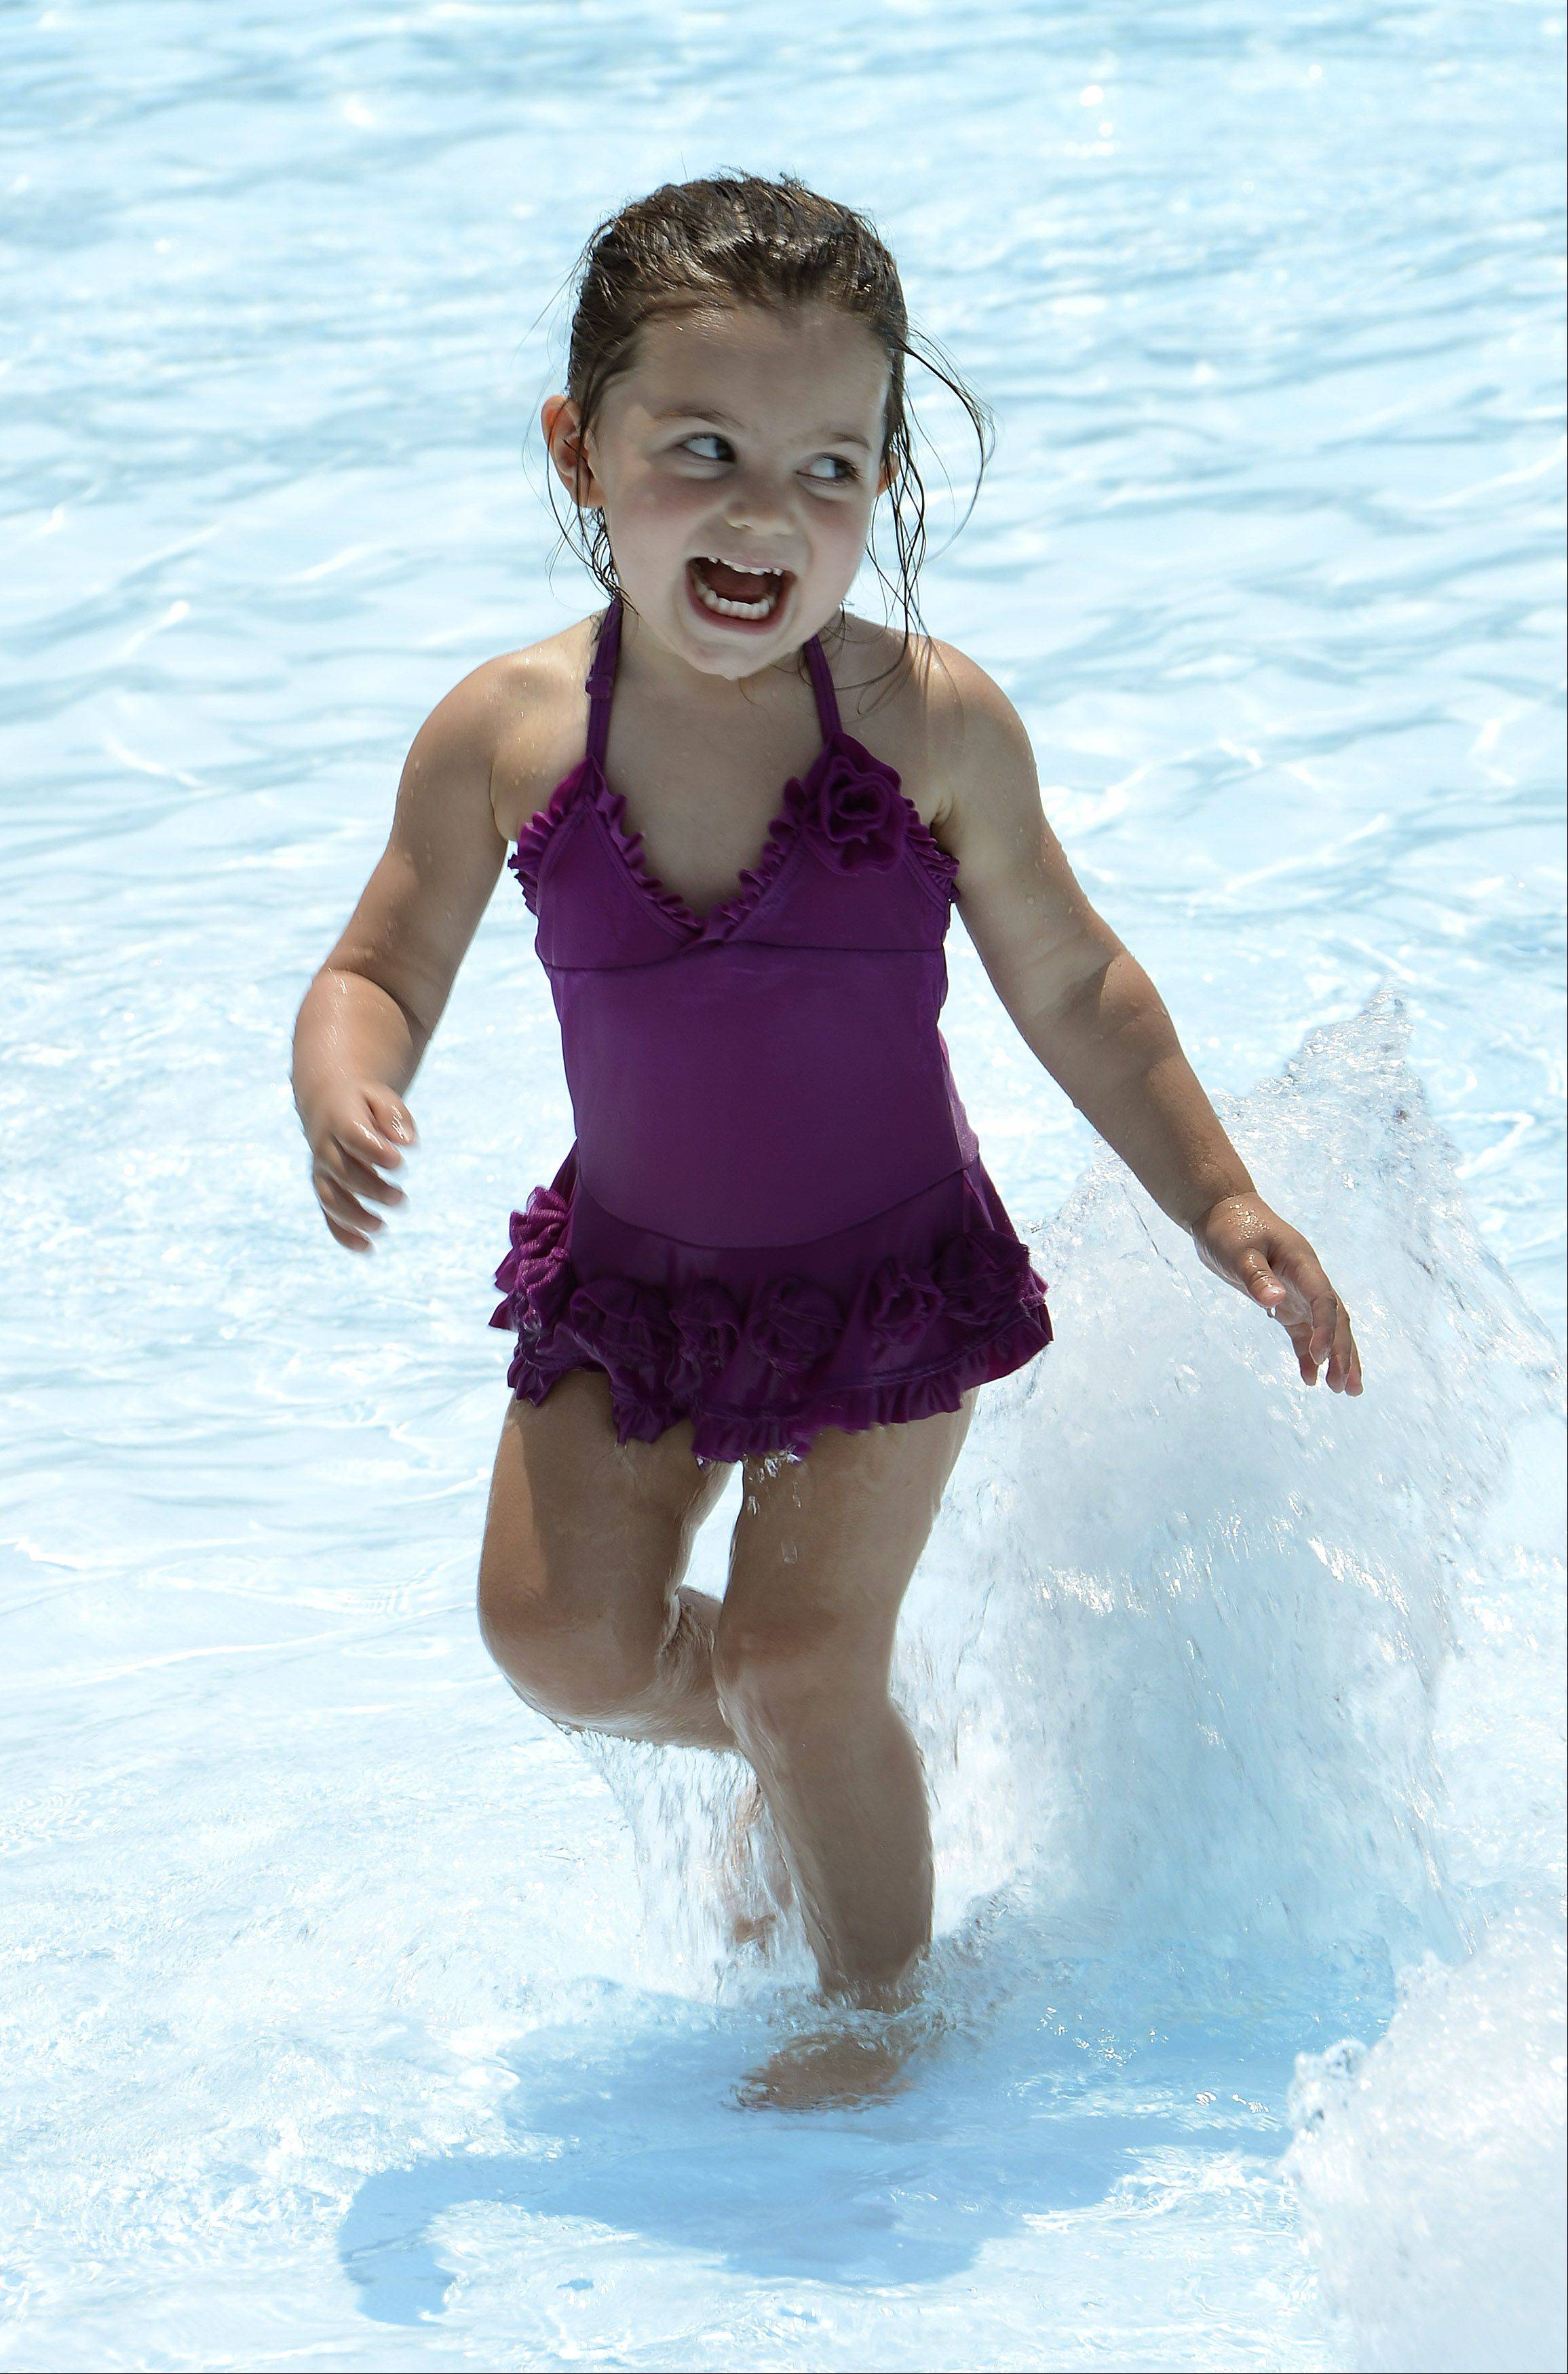 Two-year-old Lia LaValle of Arlington Heights cools off the Meadows Park Aquatic Center in Mount Prospect.